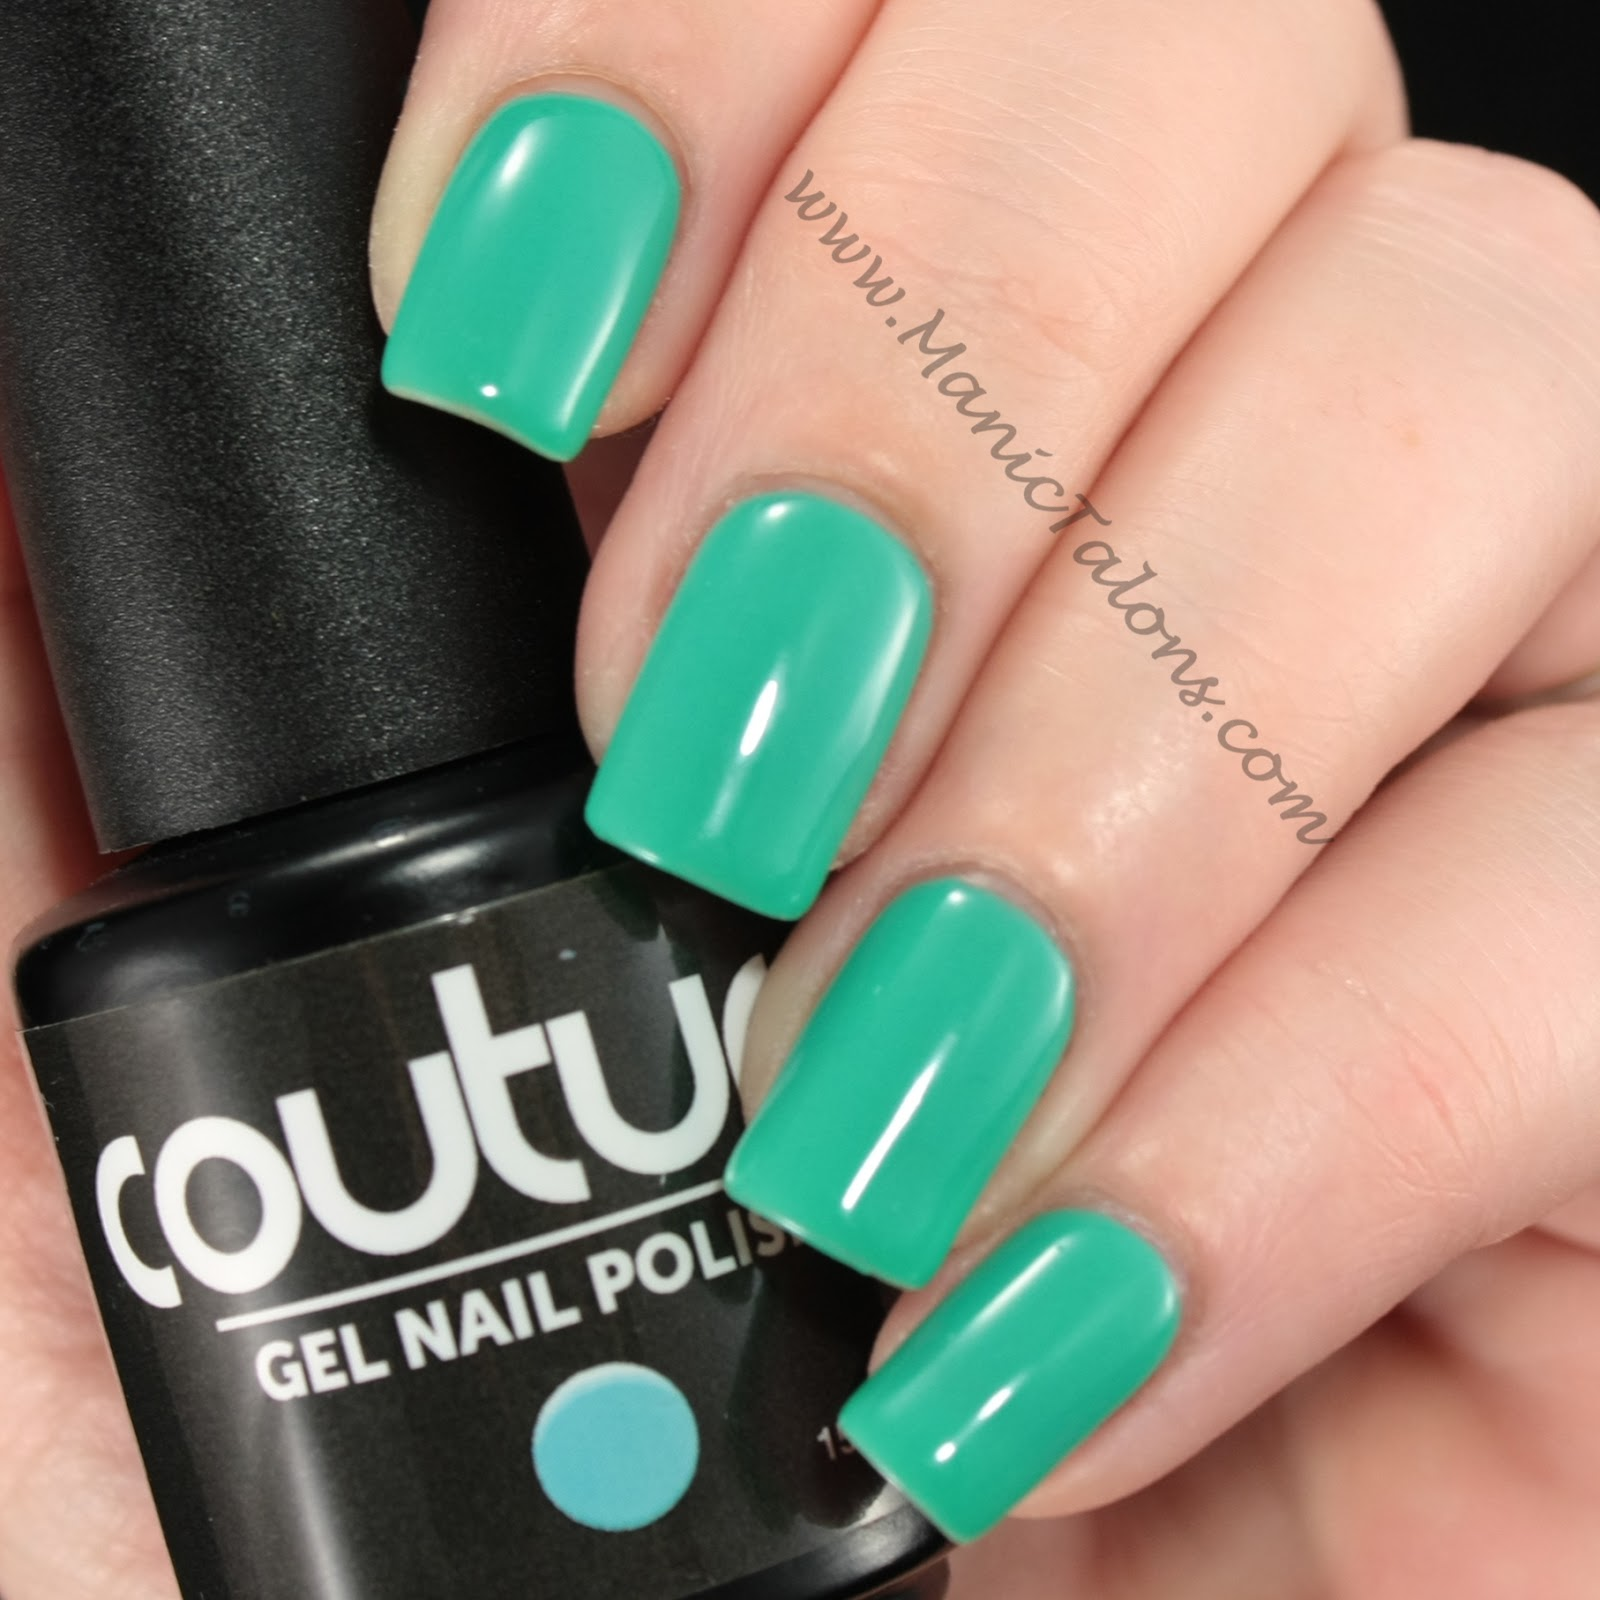 Couture Gel Nail Polish Spa Day Swatch